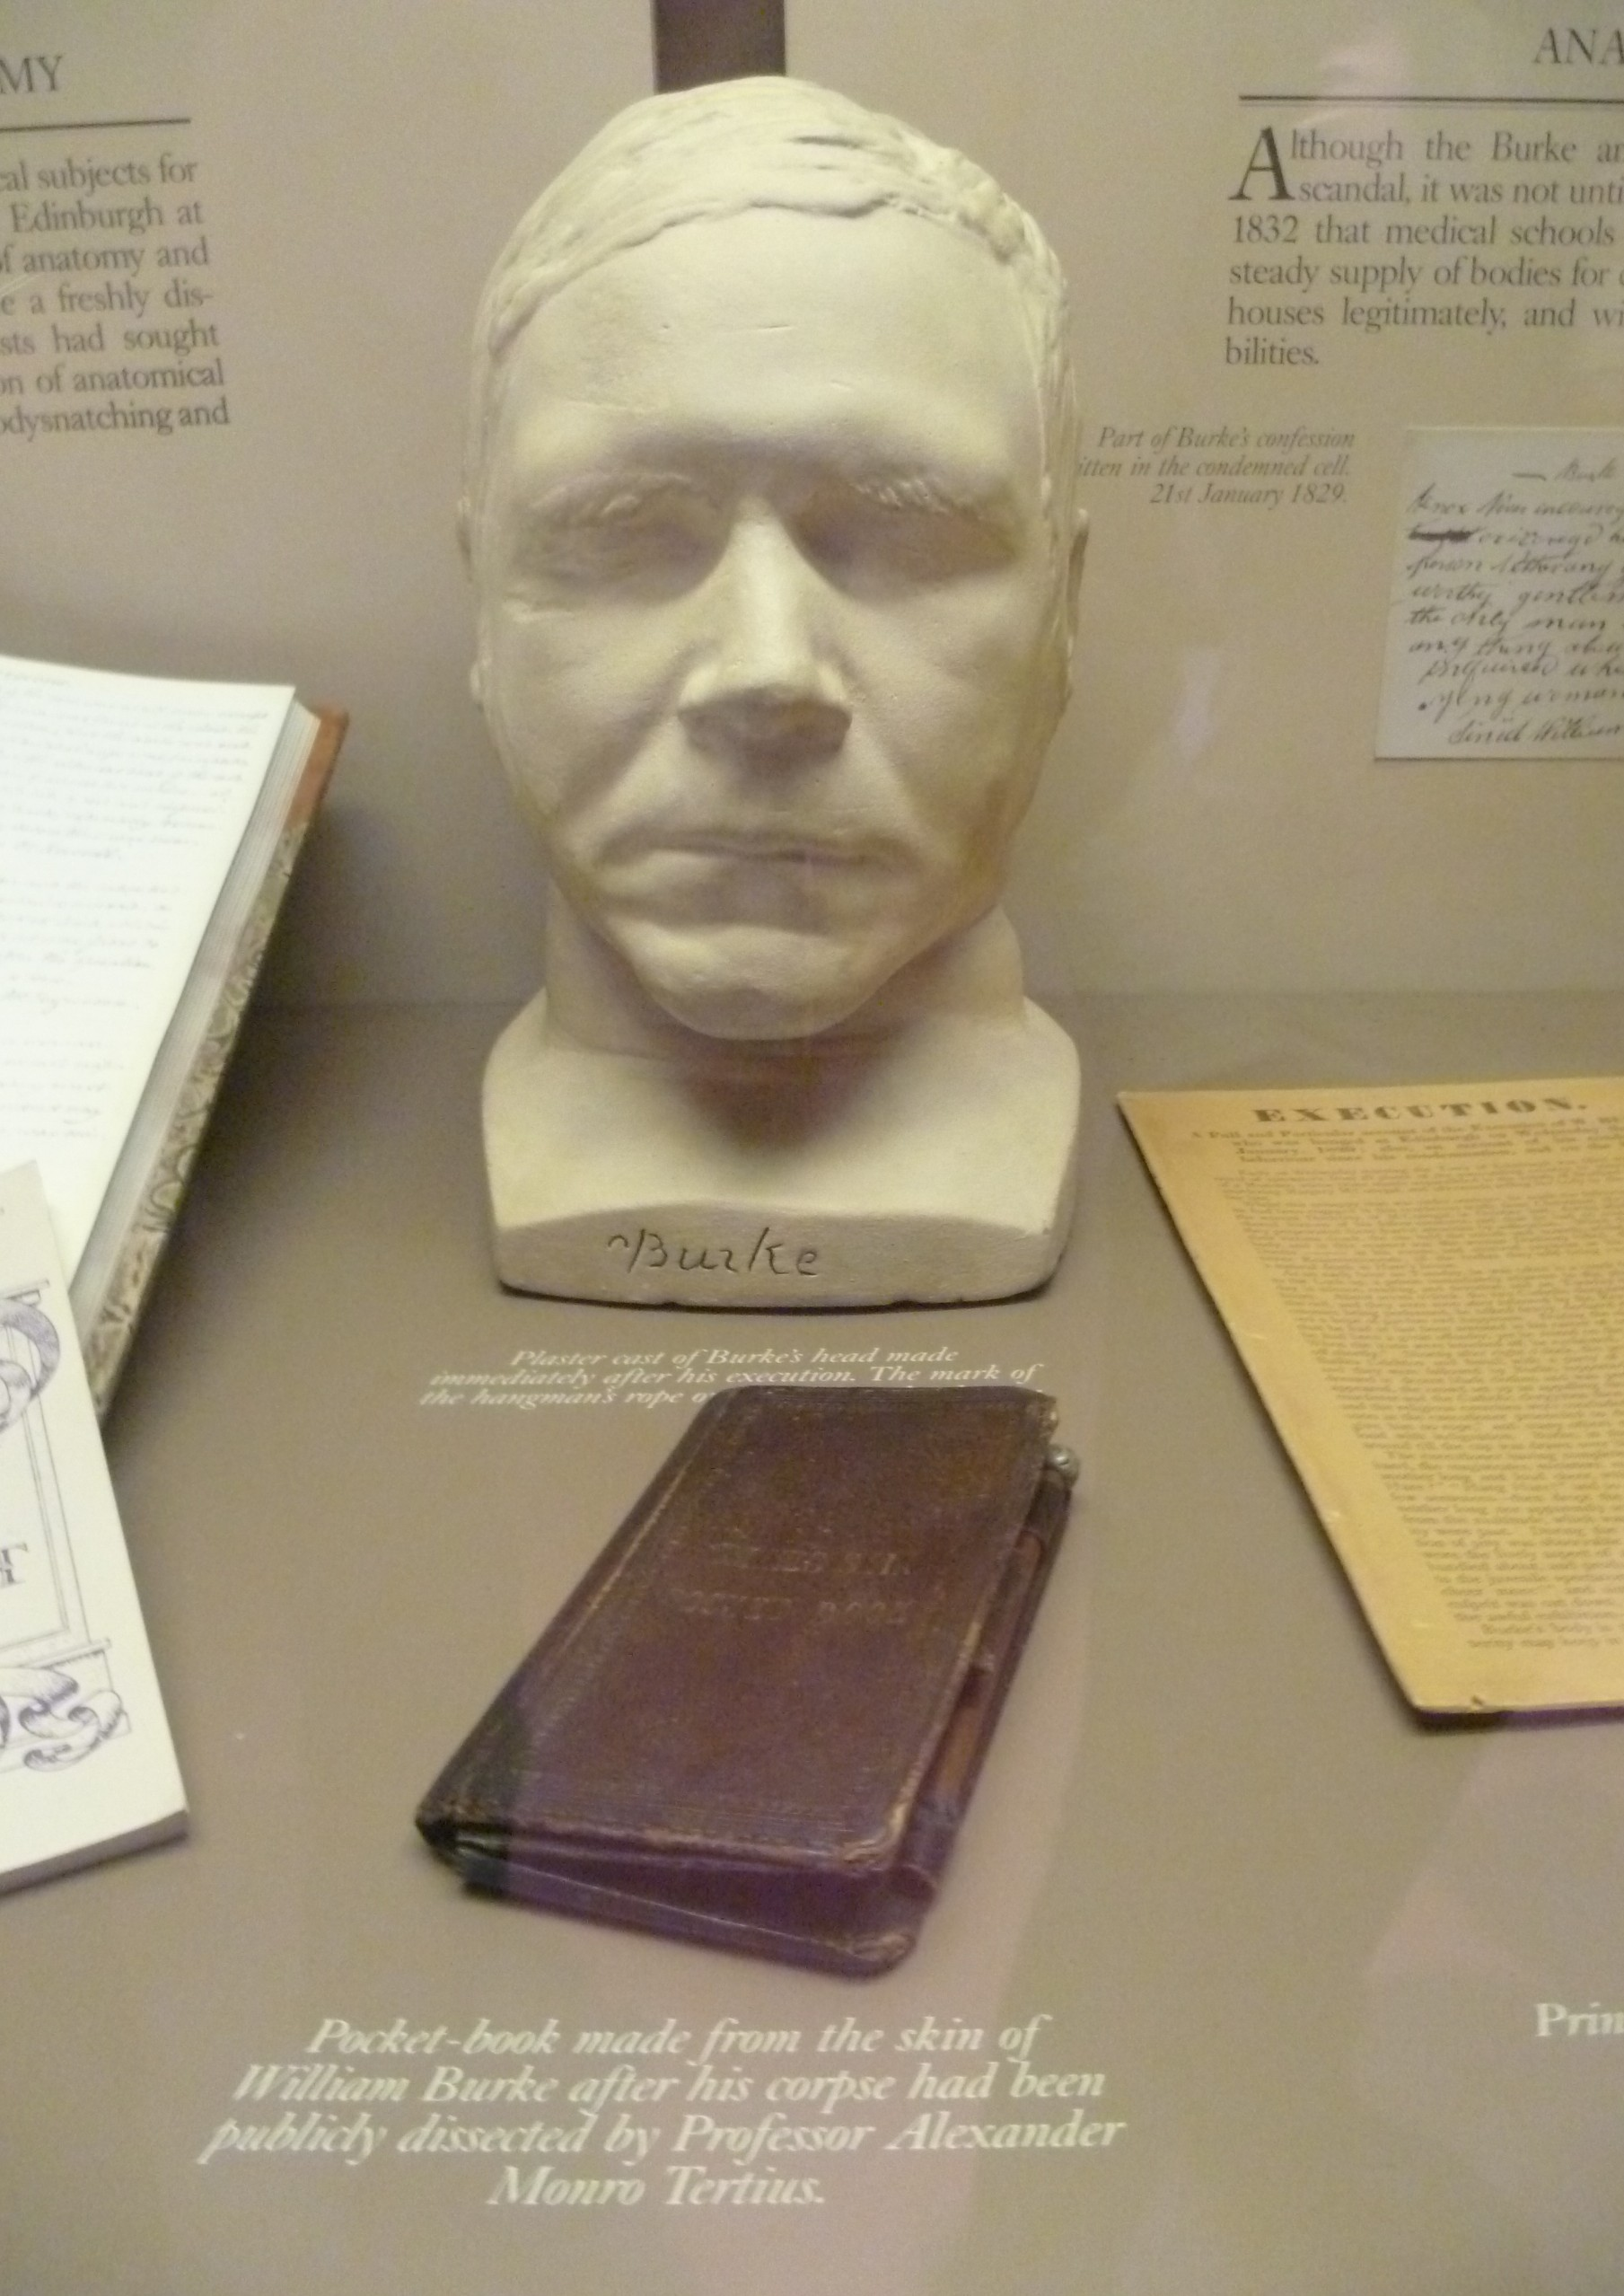 William Burke's Facemask and skin journal